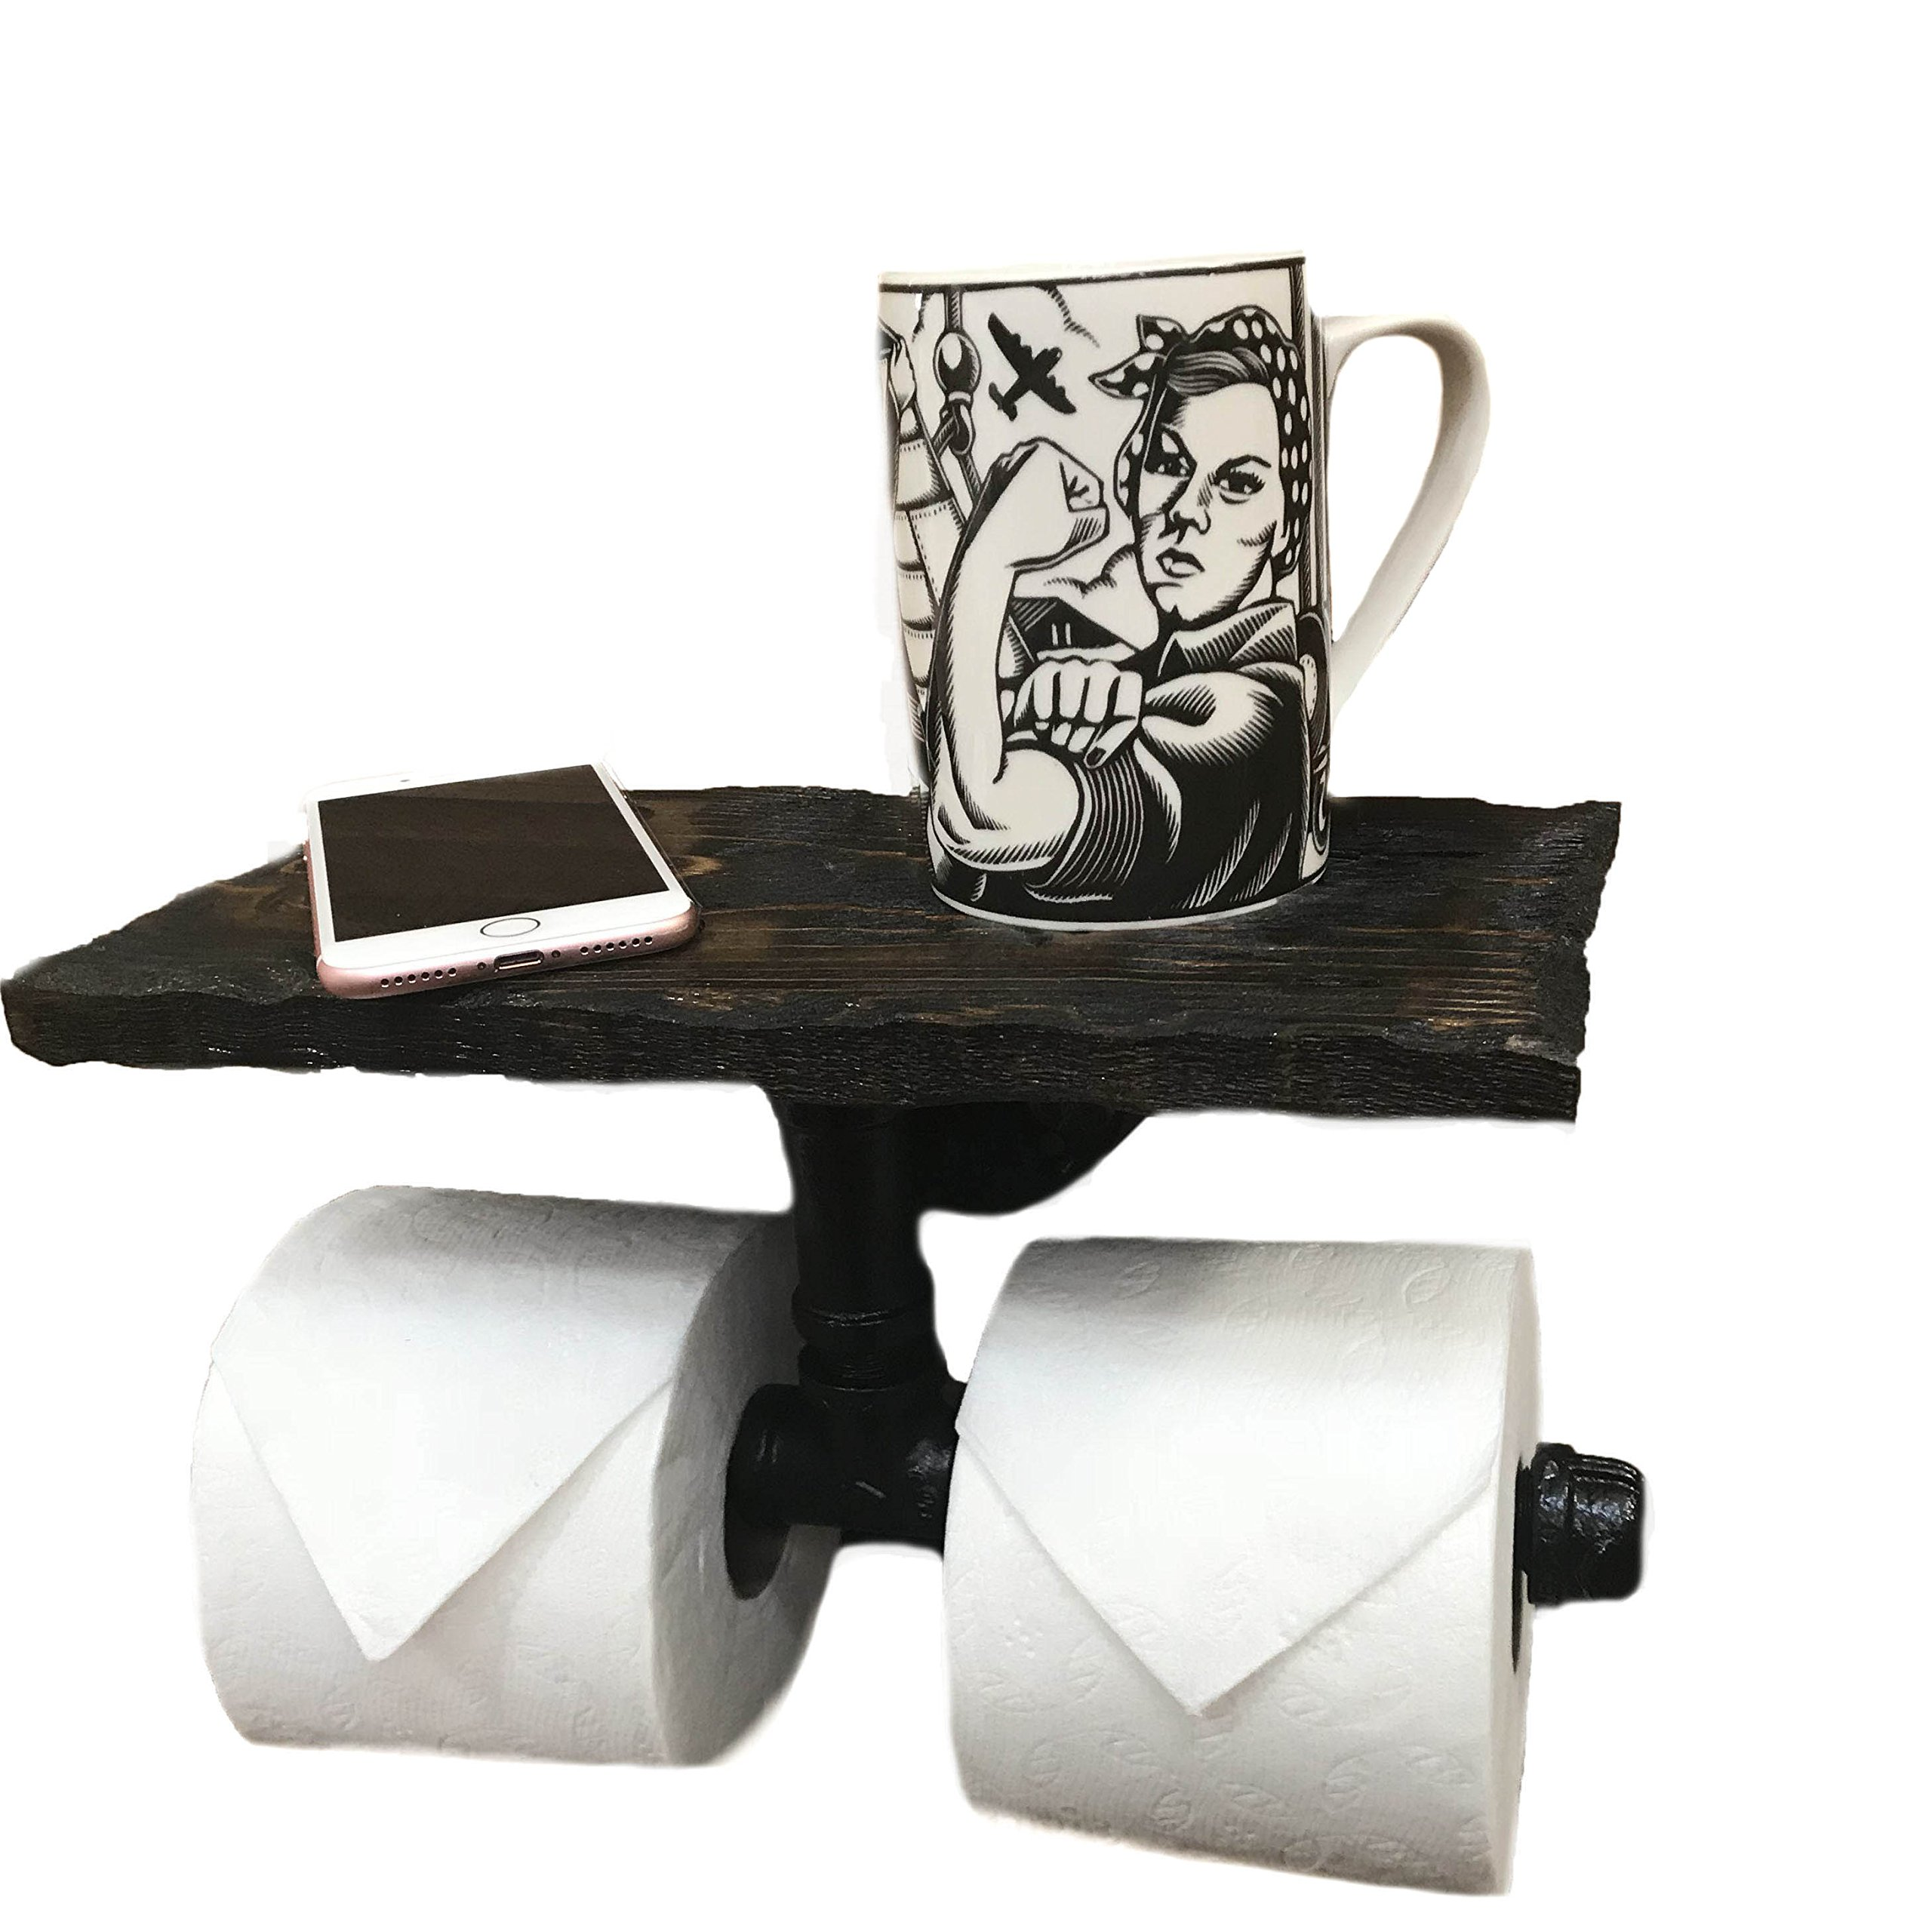 Industrial 2 Roll Toilet Paper Holder-PERSONALIZED Floating Distressed Weathered Shelf. NEVER RUN OUT OF TP AGAIN ! (Dark Walnut)